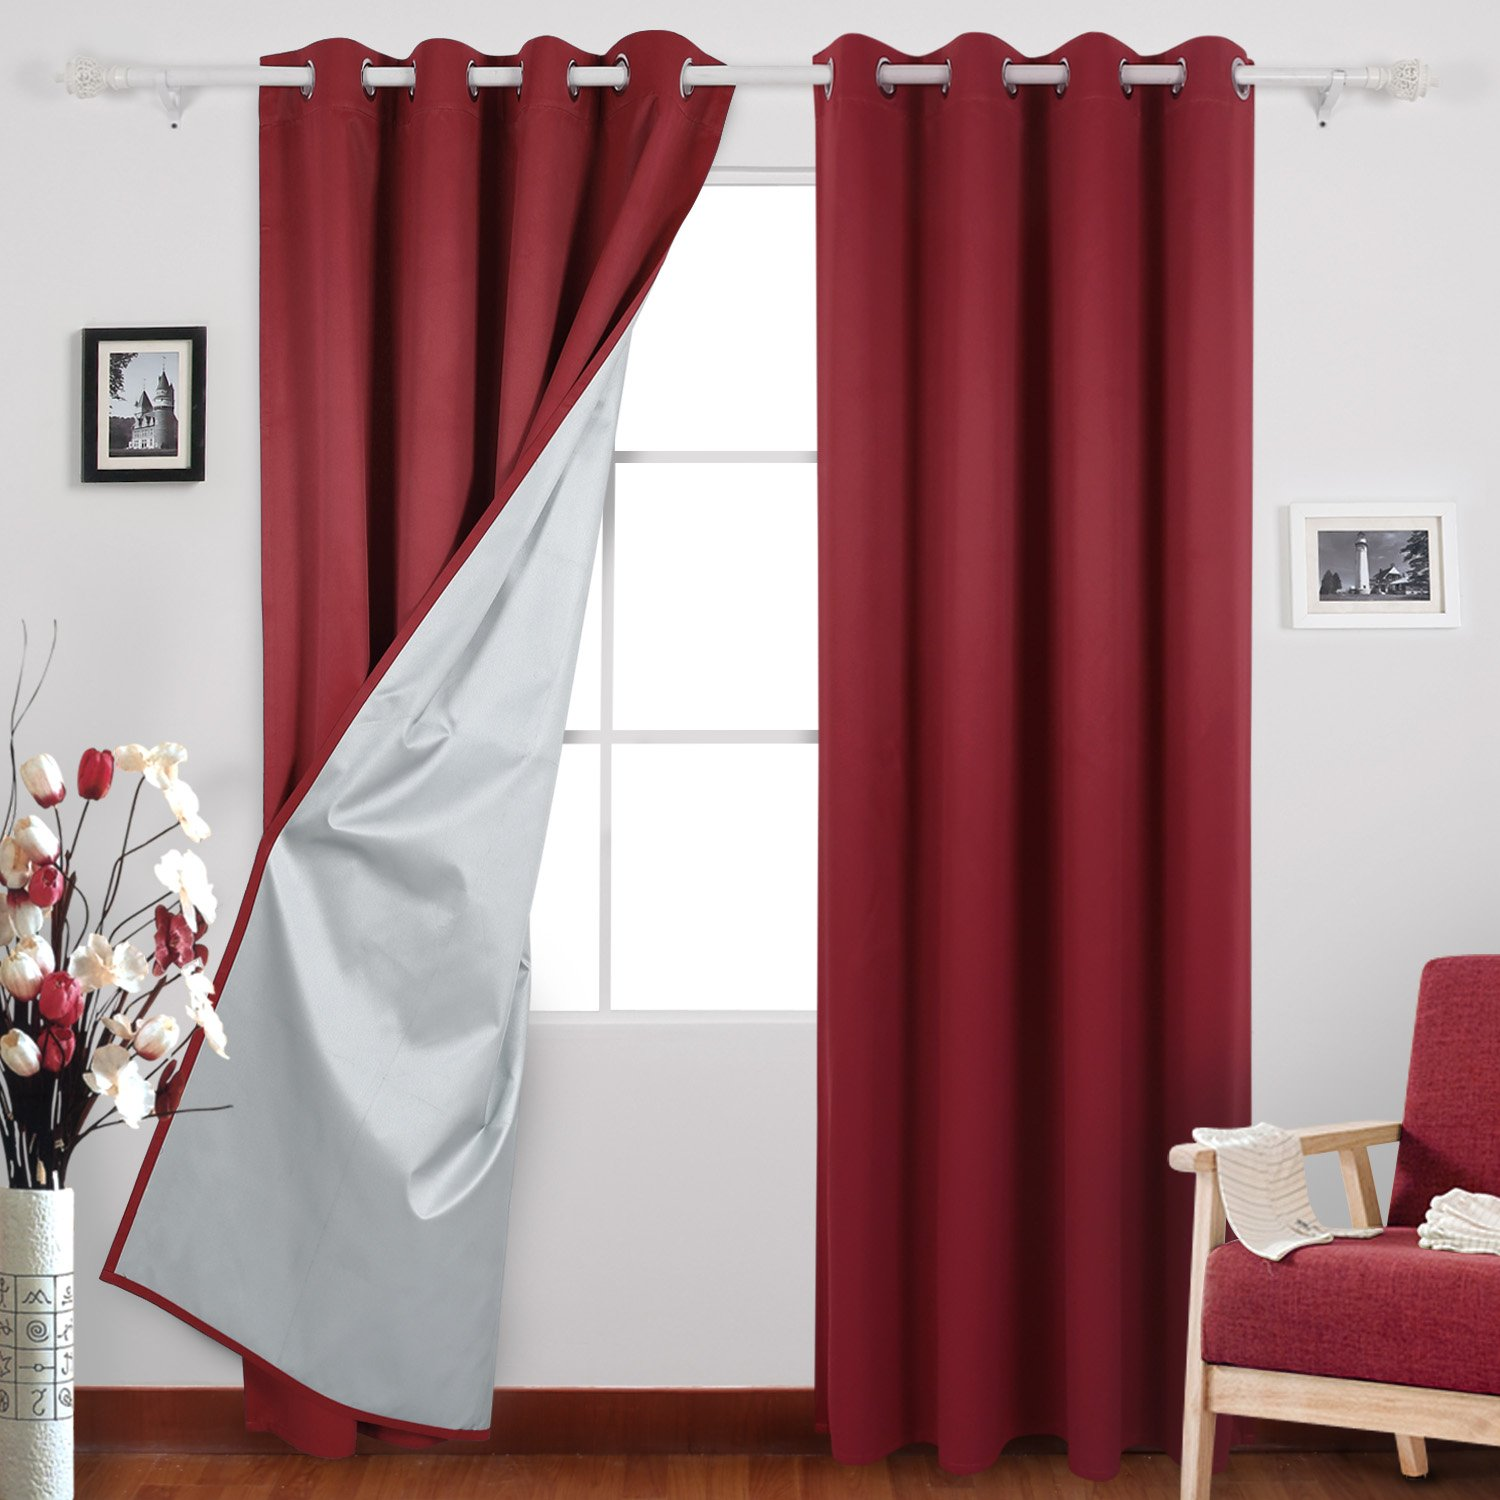 Red Deconovo Red Thermal Insulated Blackout Curtains with Silver Coating Blackout Panels